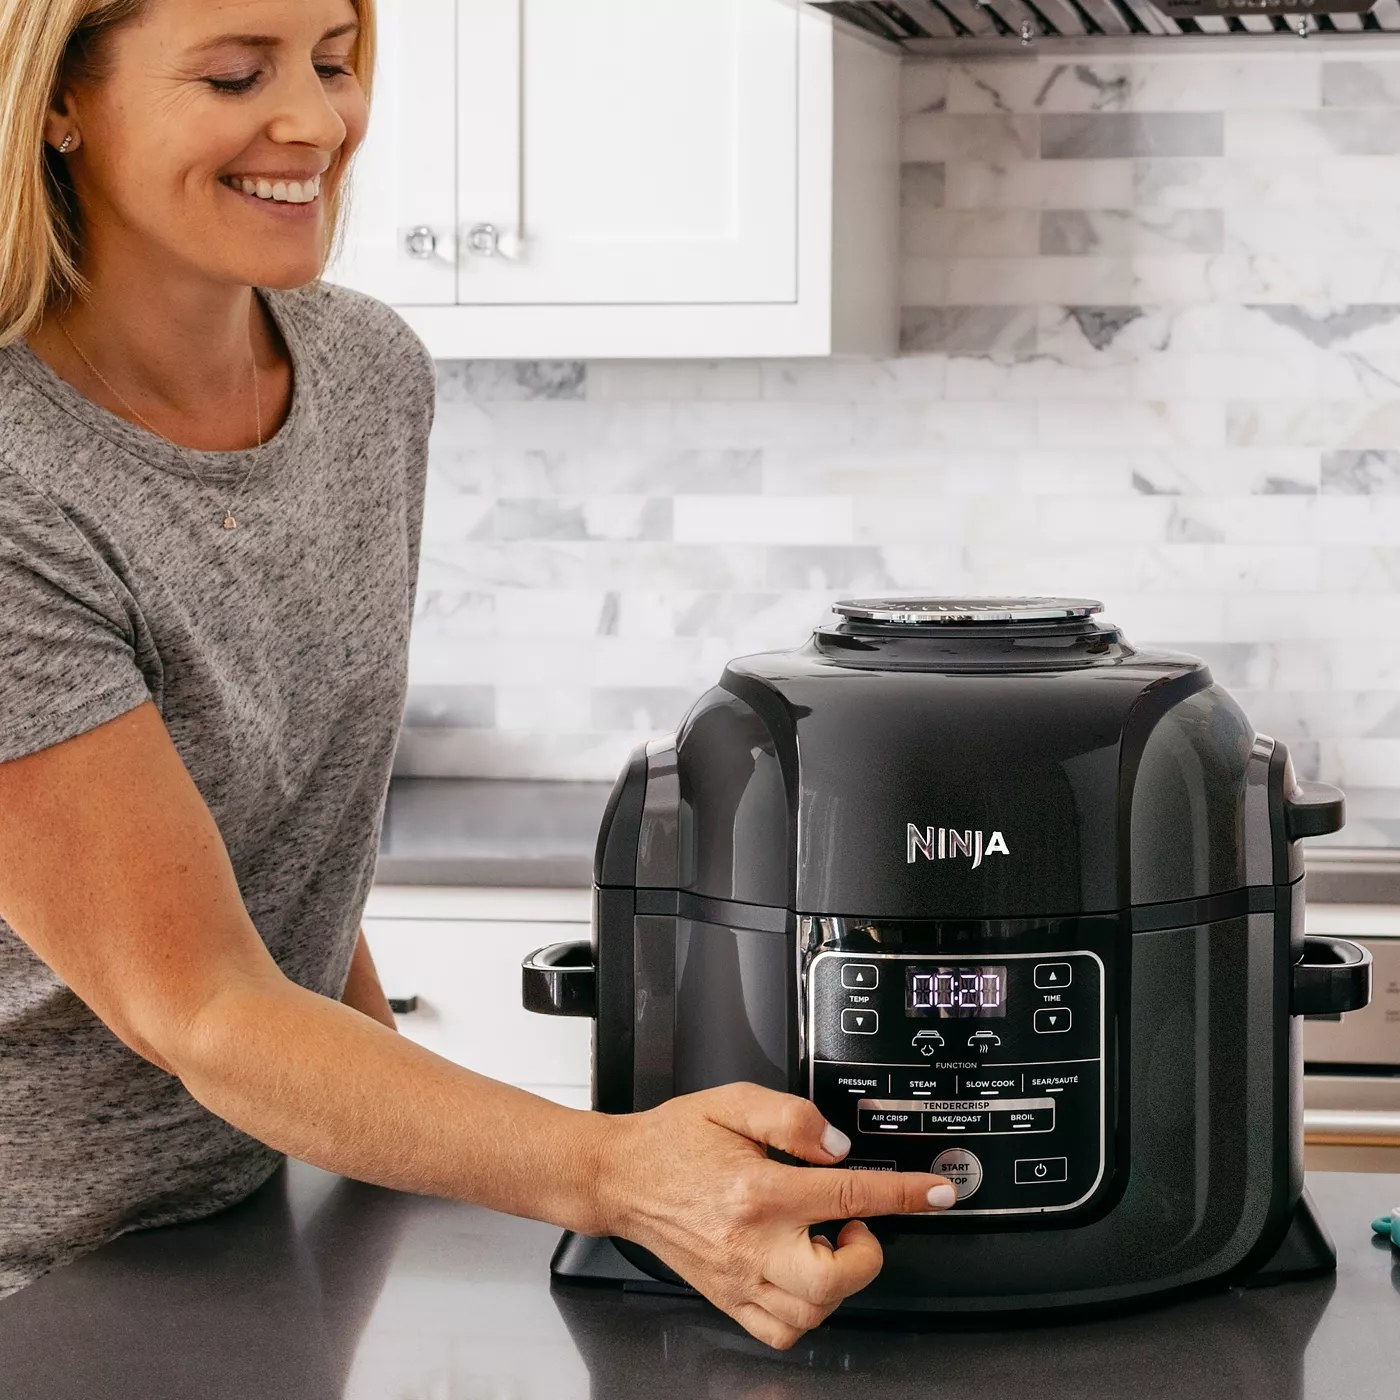 A model presses the start button on the Ninja pressure cooker and air fryer control panel